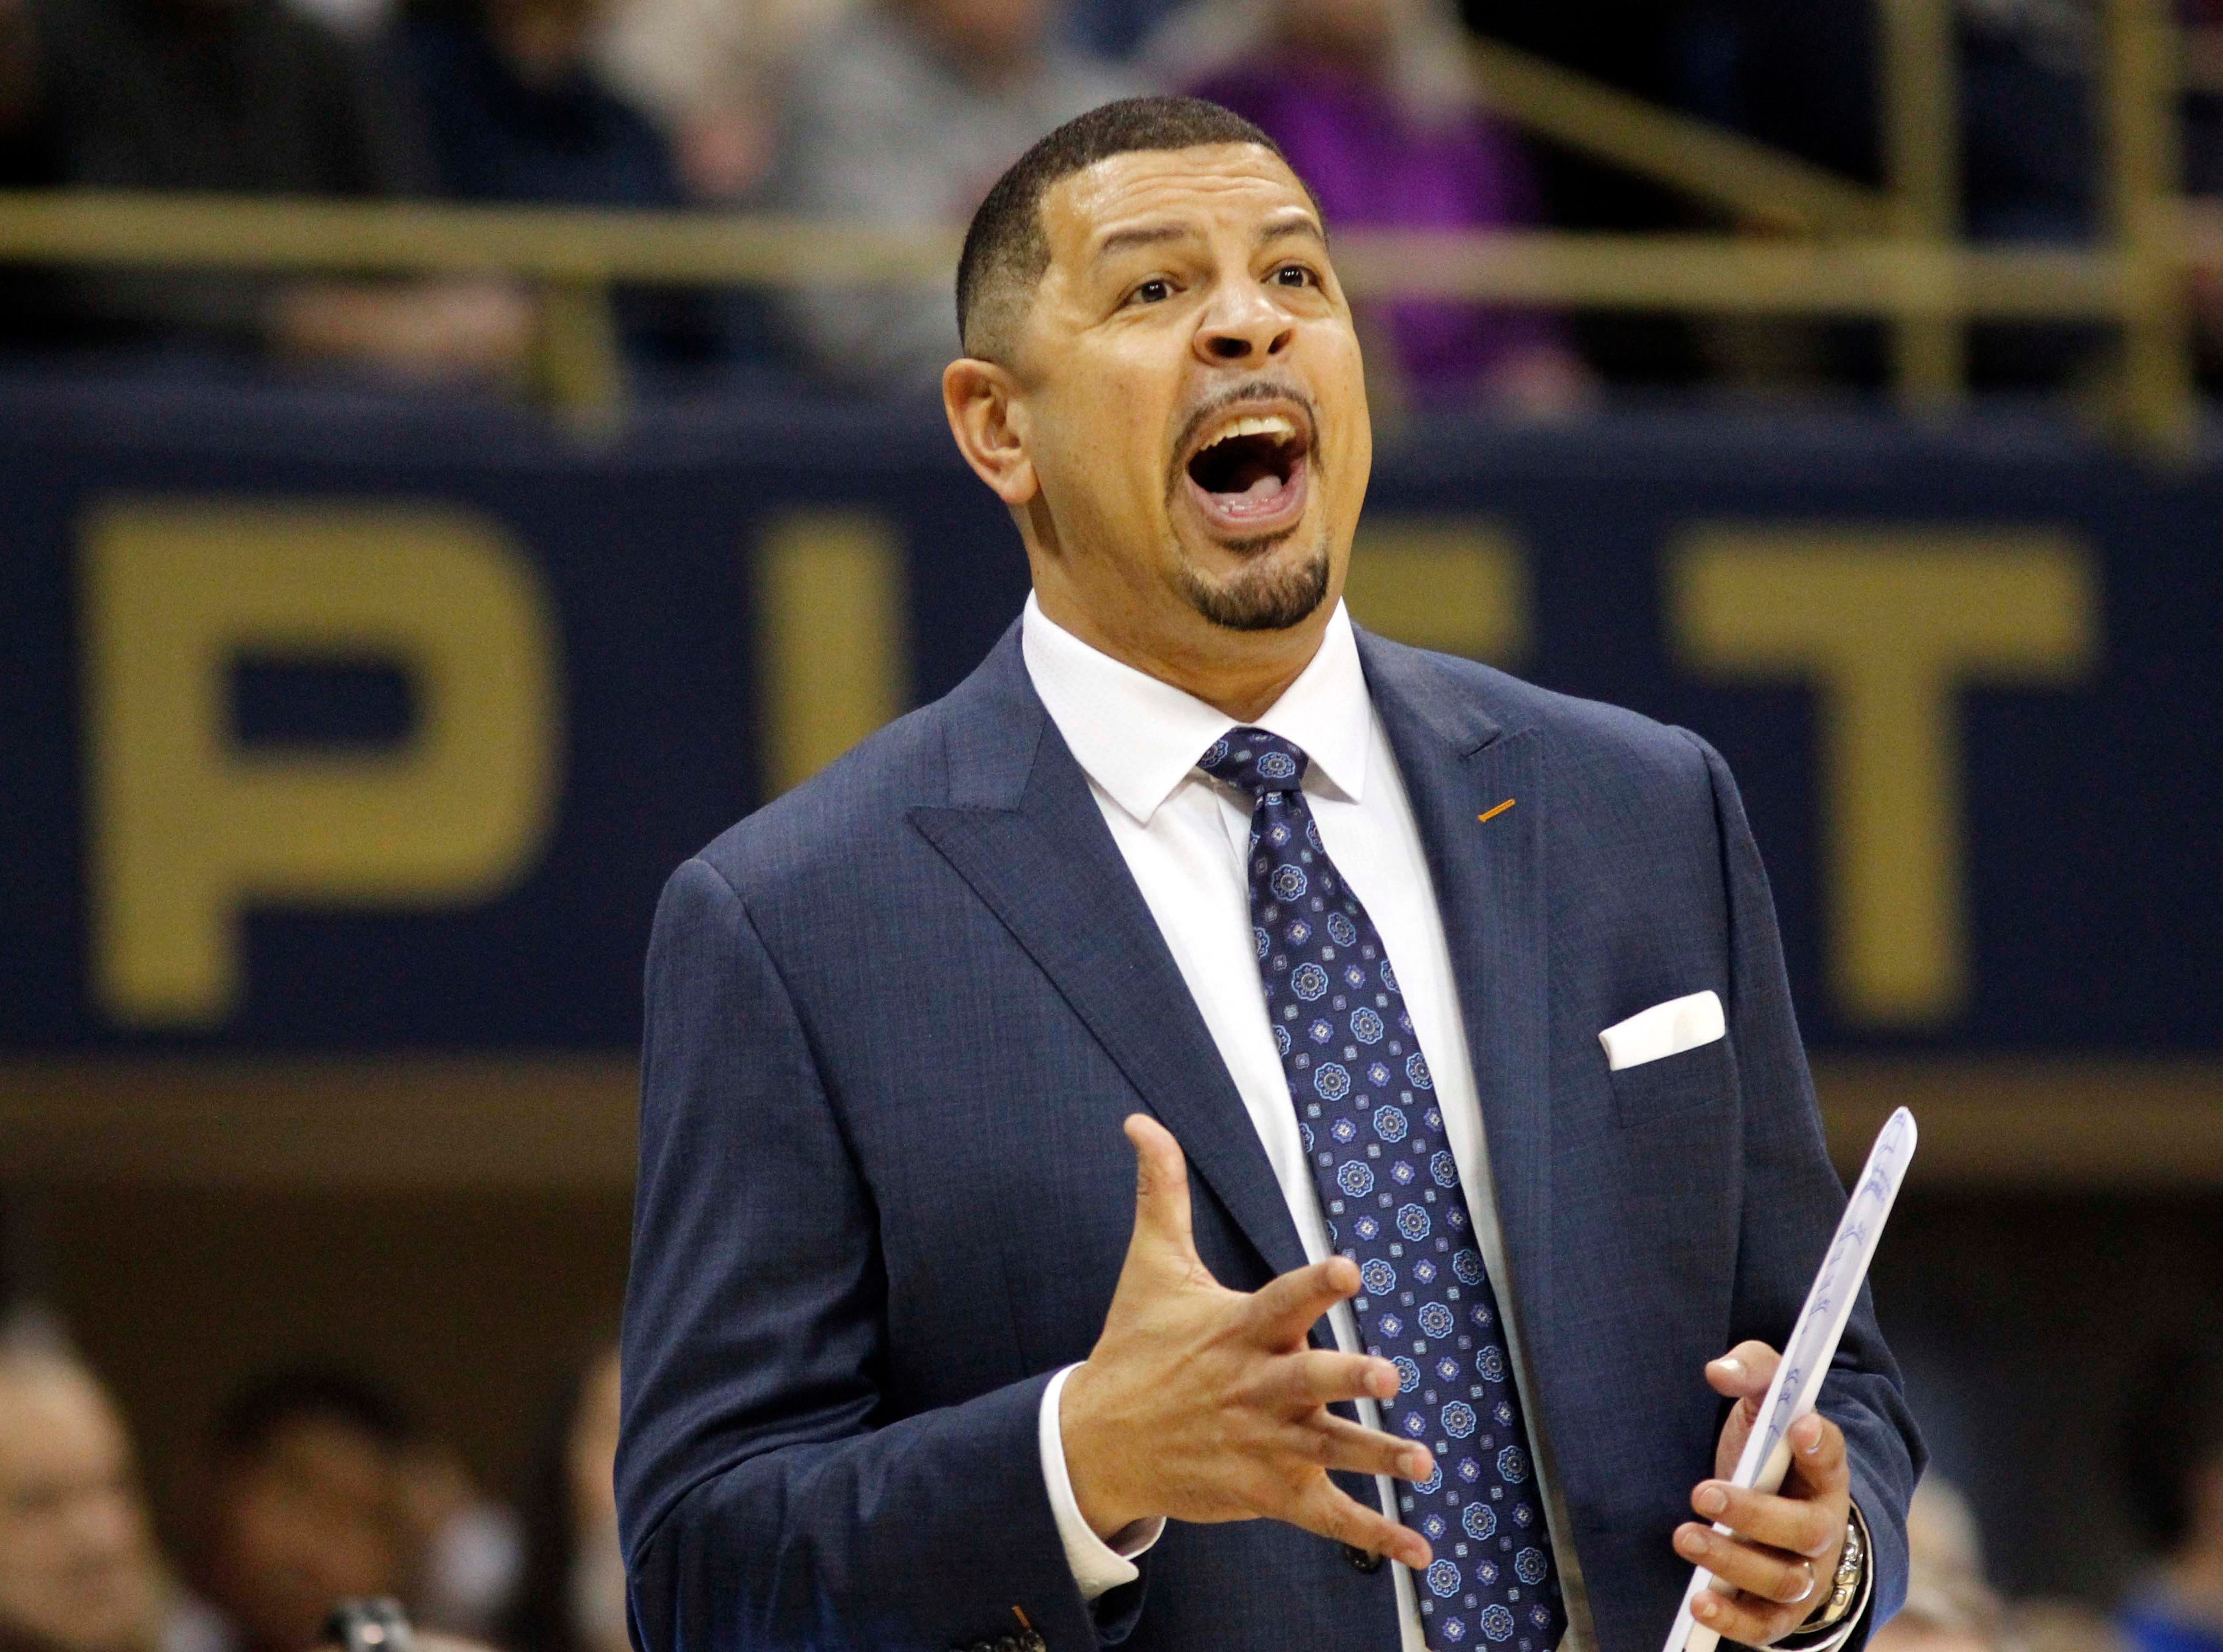 Jan 14, 2019; Pittsburgh, PA, USA; Pittsburgh Panthers head coach Jeff Capel  reacts on the sidelines against the Florida State Seminoles during the first half at the Petersen Events Center. Mandatory Credit: Charles LeClaire-USA TODAY Sports